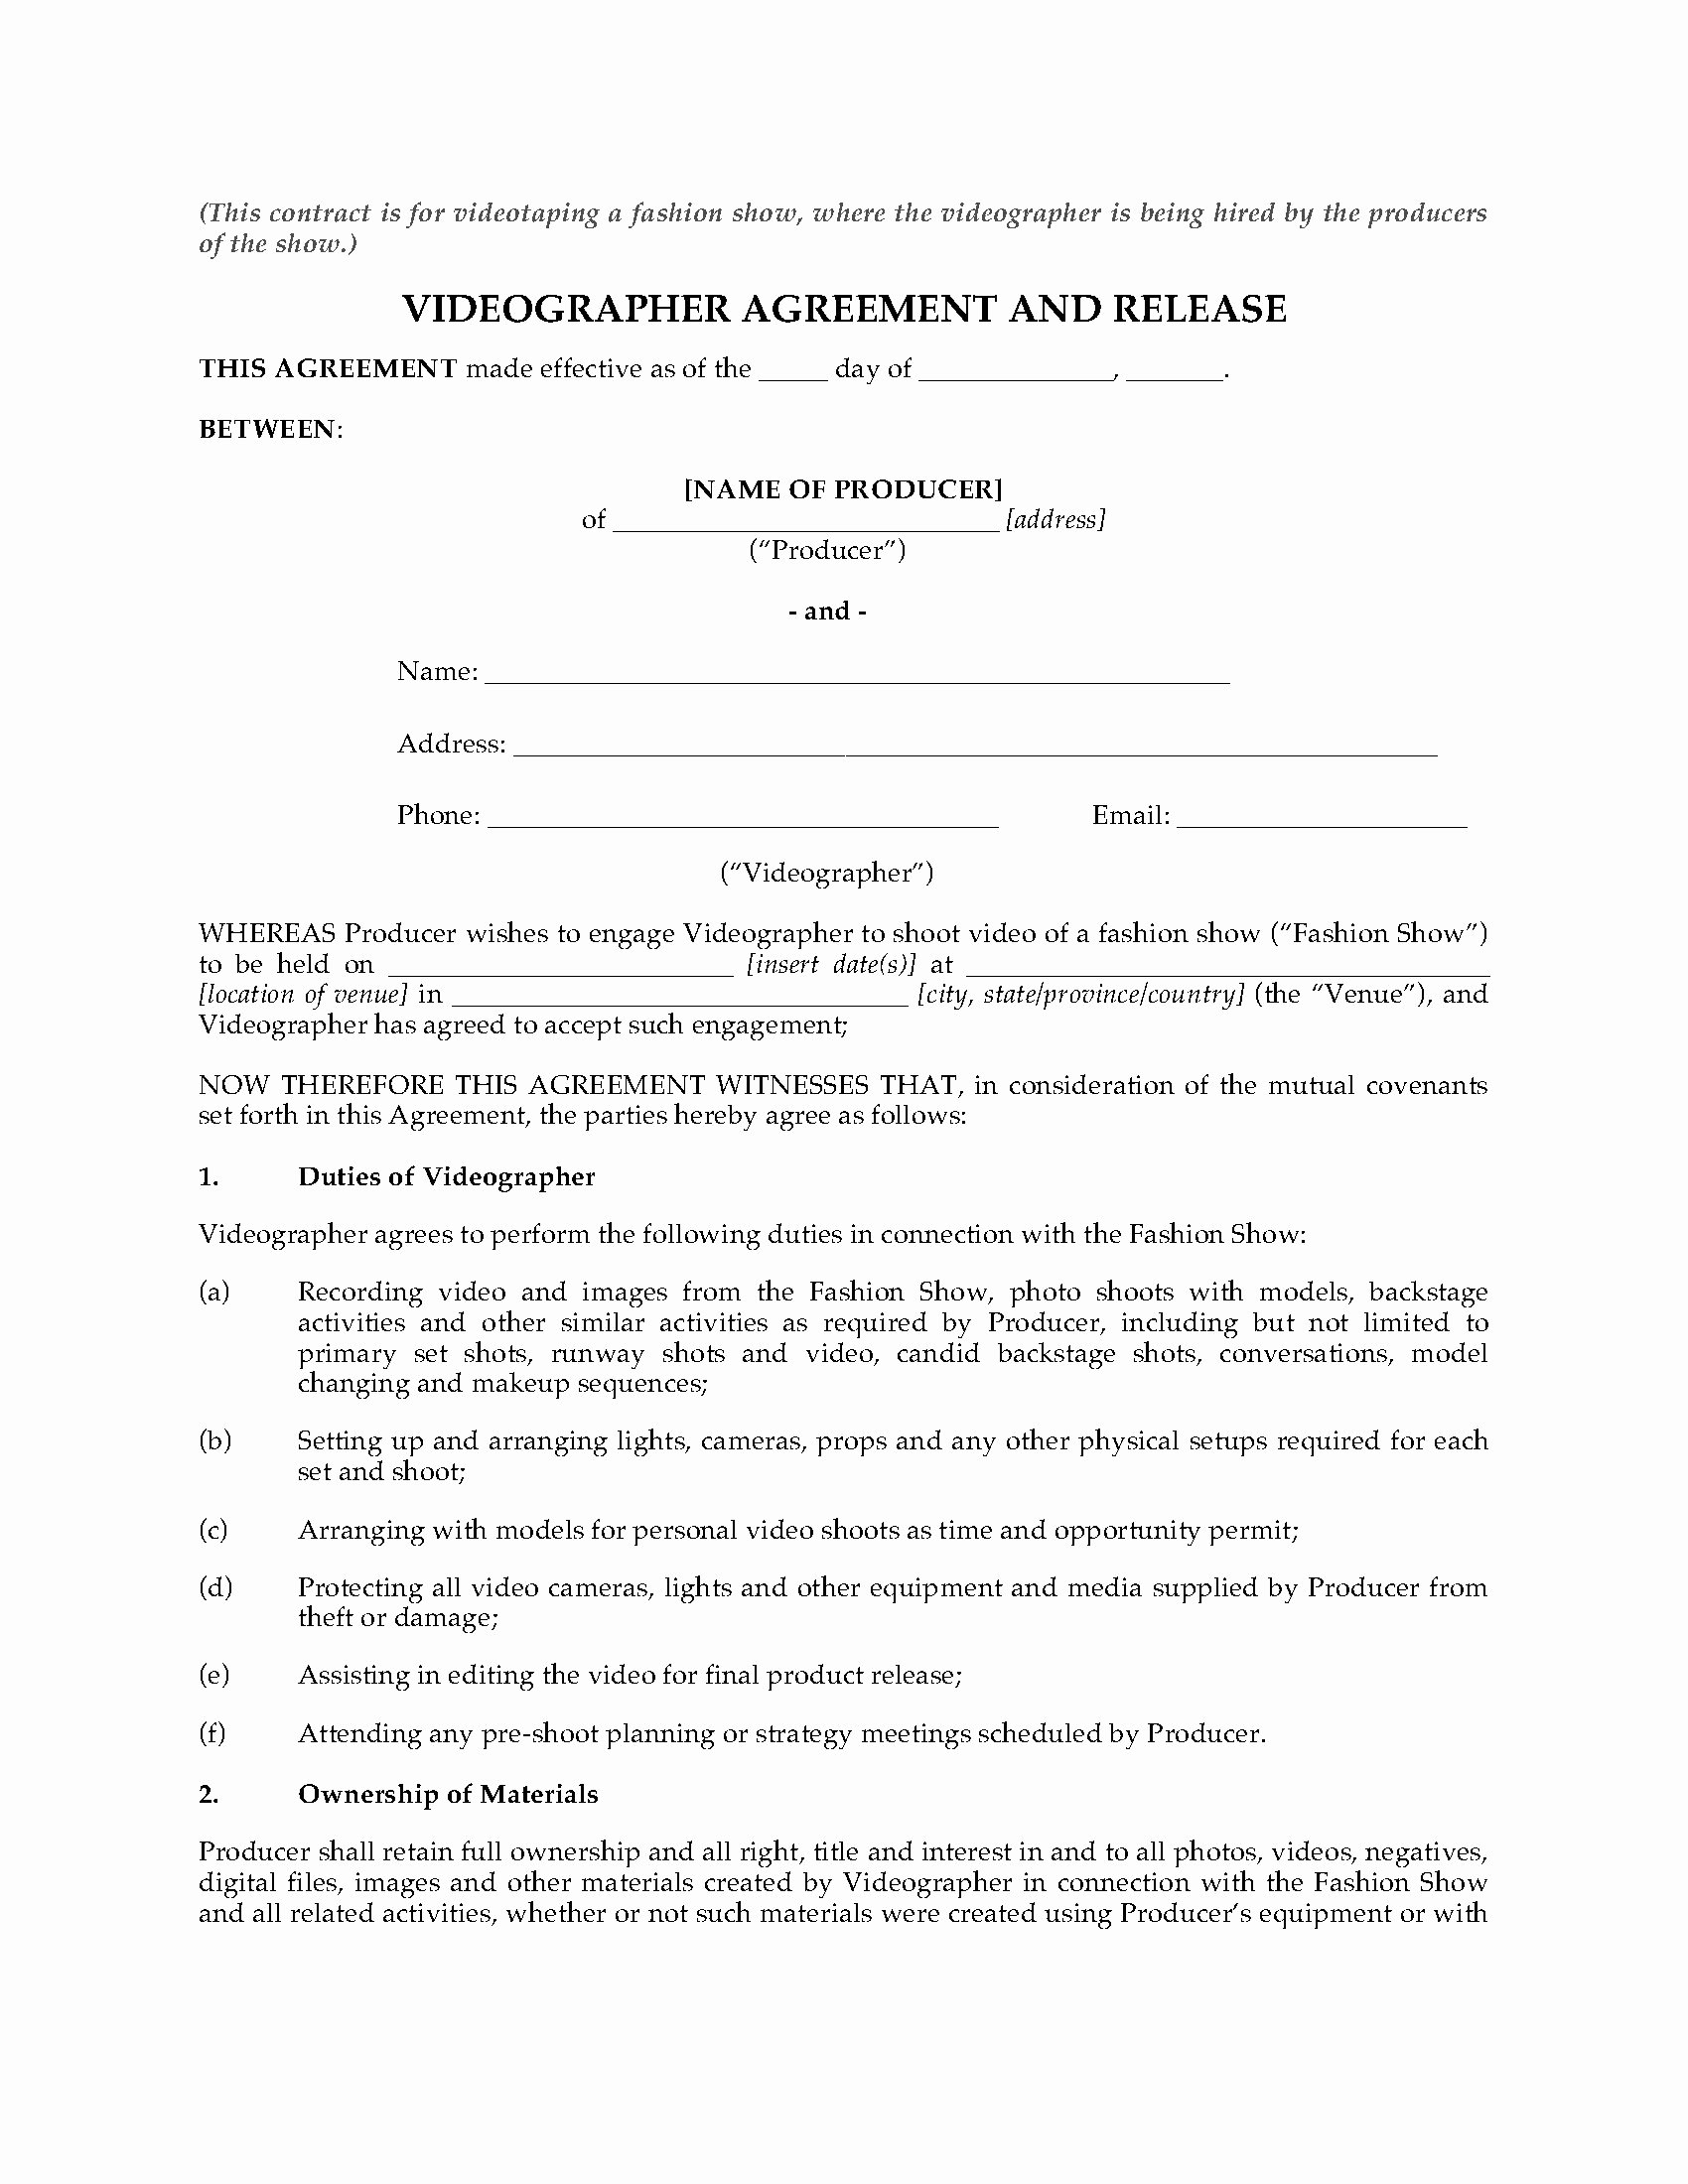 Wedding Videographer Contract Template Elegant Videography Agreement for Fashion Show